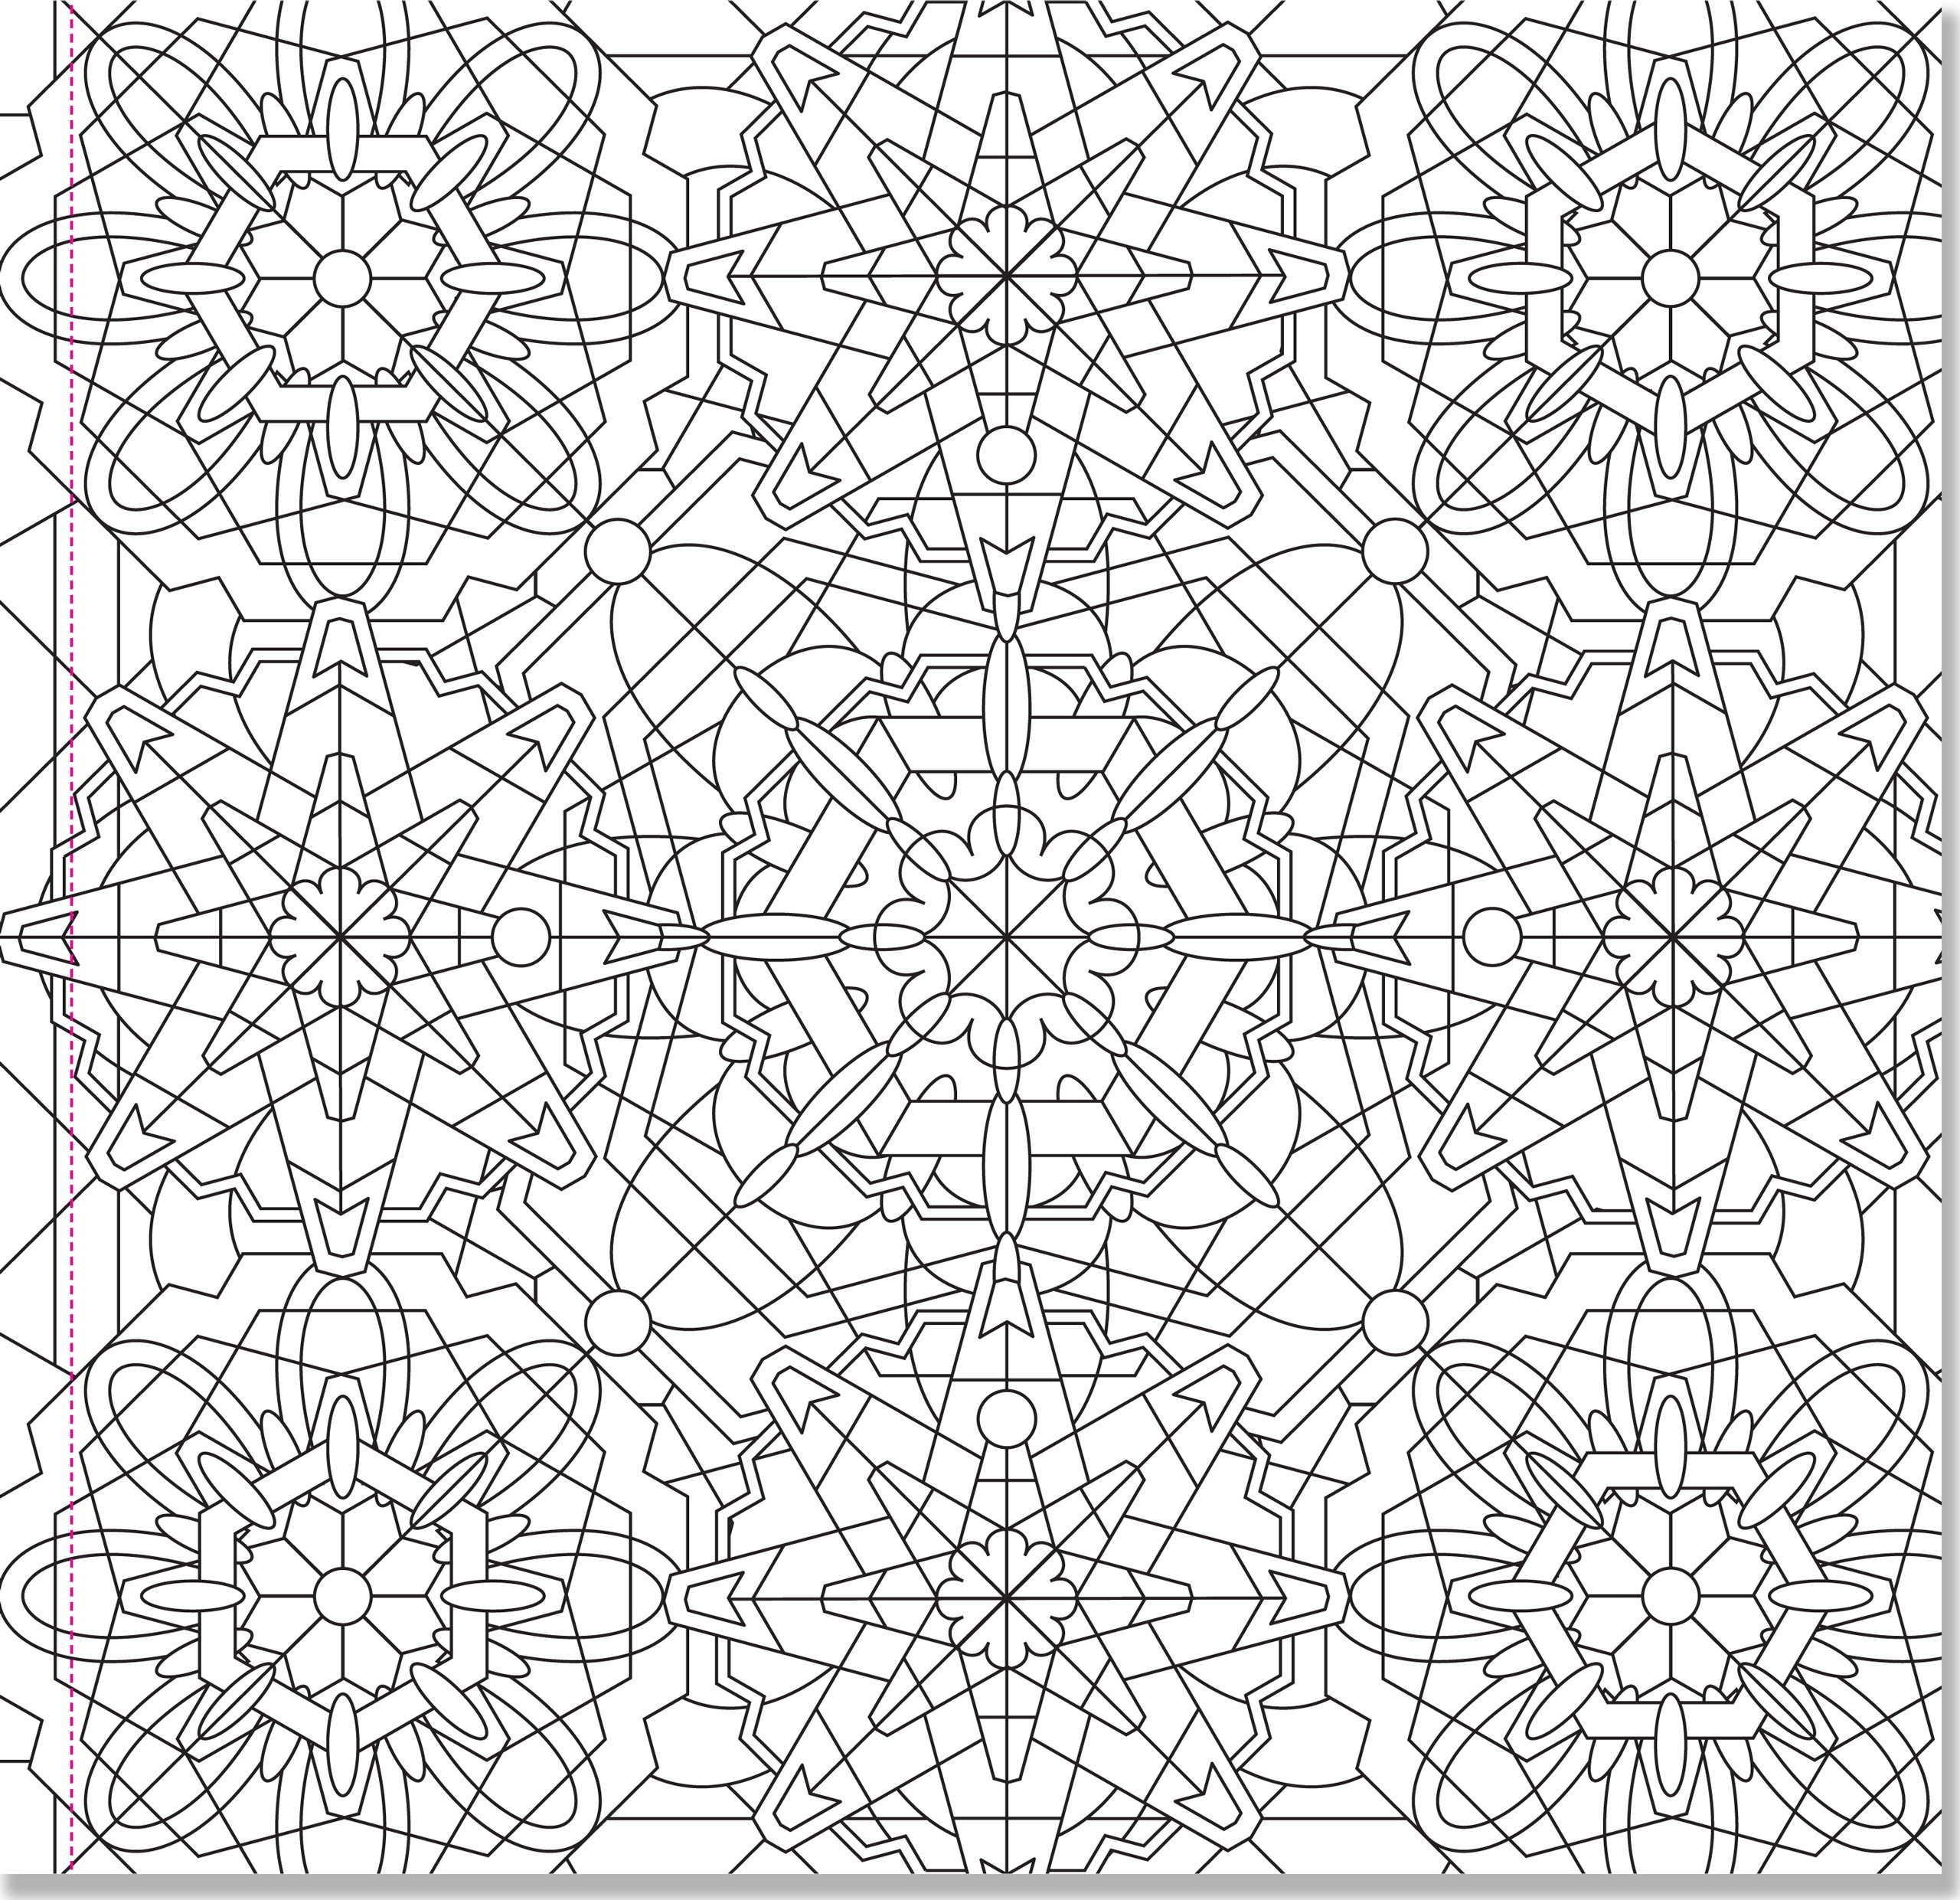 Free coloring pages kaleidoscope designs - Amazon Com Kaleidoscope Designs Adult Coloring Book 31 Stress Relieving Designs Studio 9781441318398 Peter Pauper Press Books